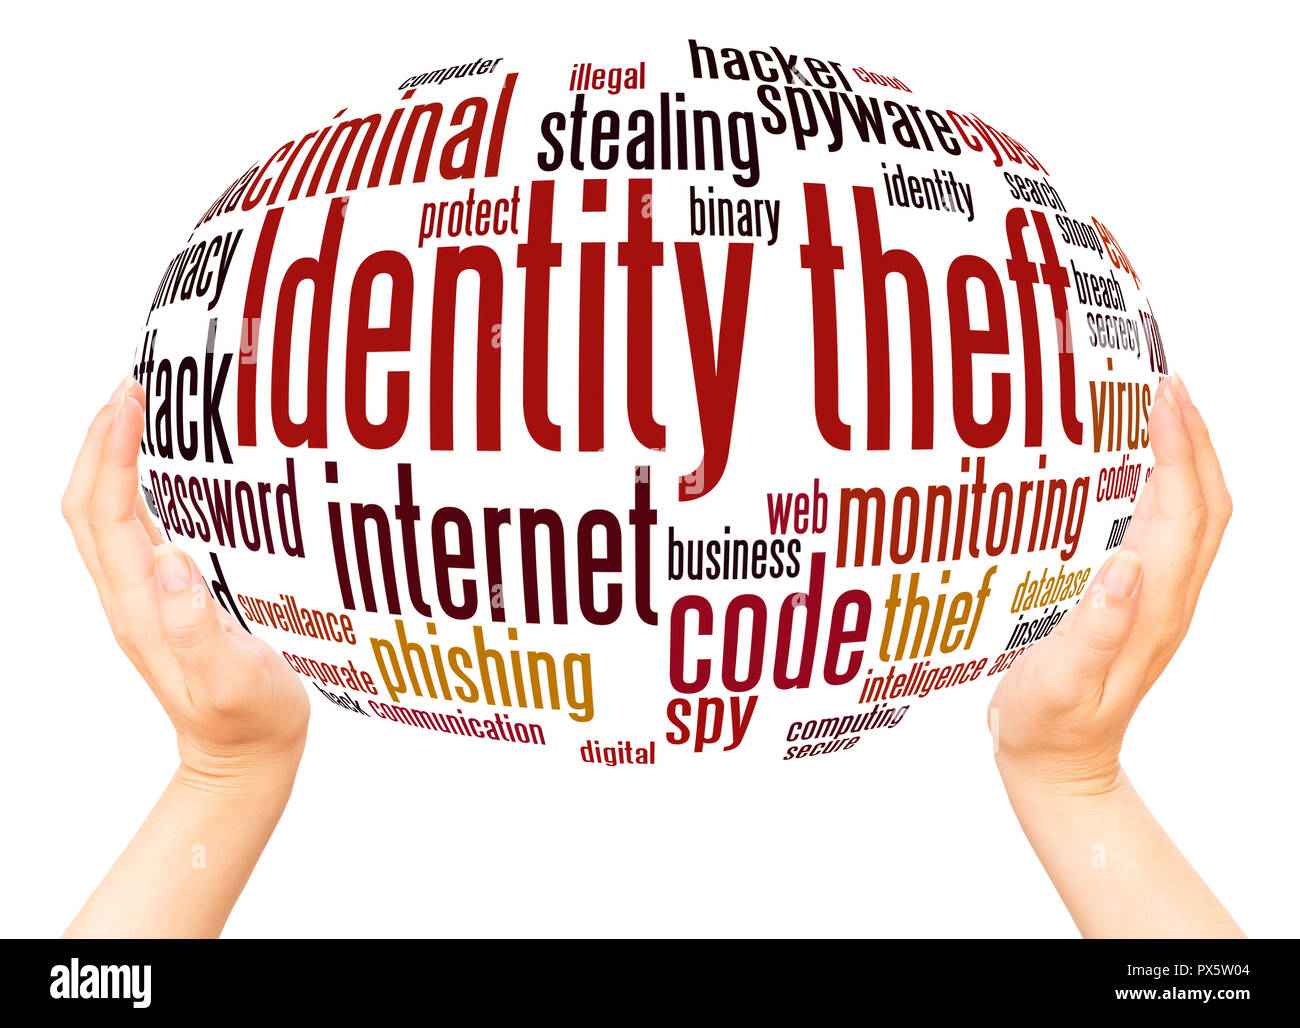 Identity theft word cloud hand sphere concept on white background. - Stock Image